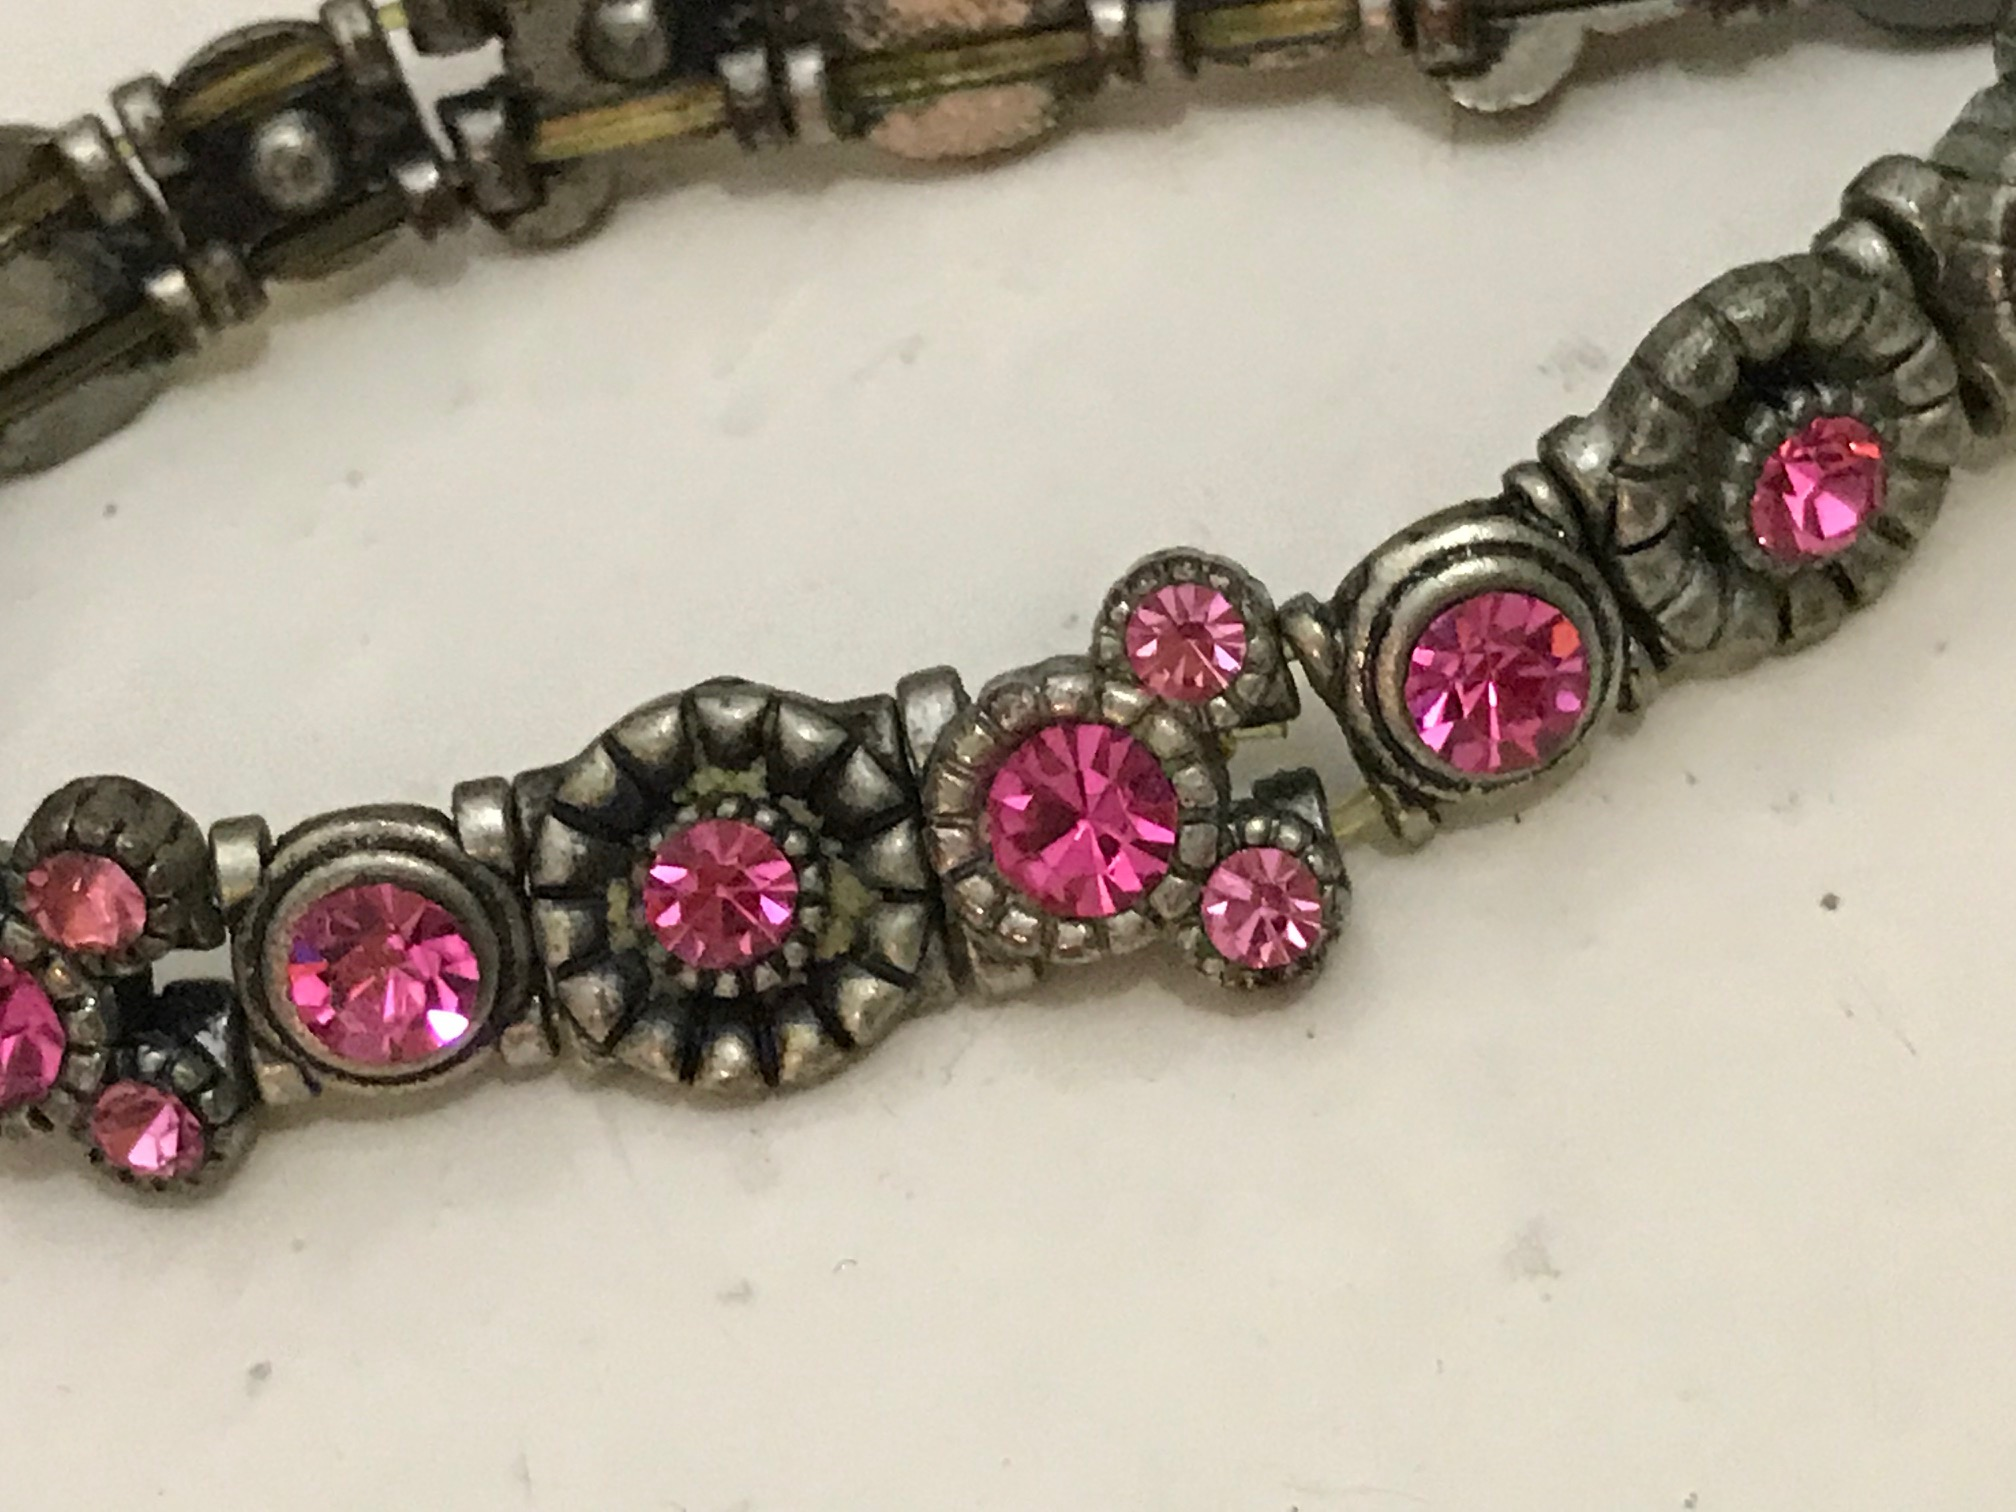 2010 Disney Branded Pink Crystal Minnie Mouse Bracelet Purchased at Disneyland: Crystals are 252,200 ppm Lead (That's 25% Lead)